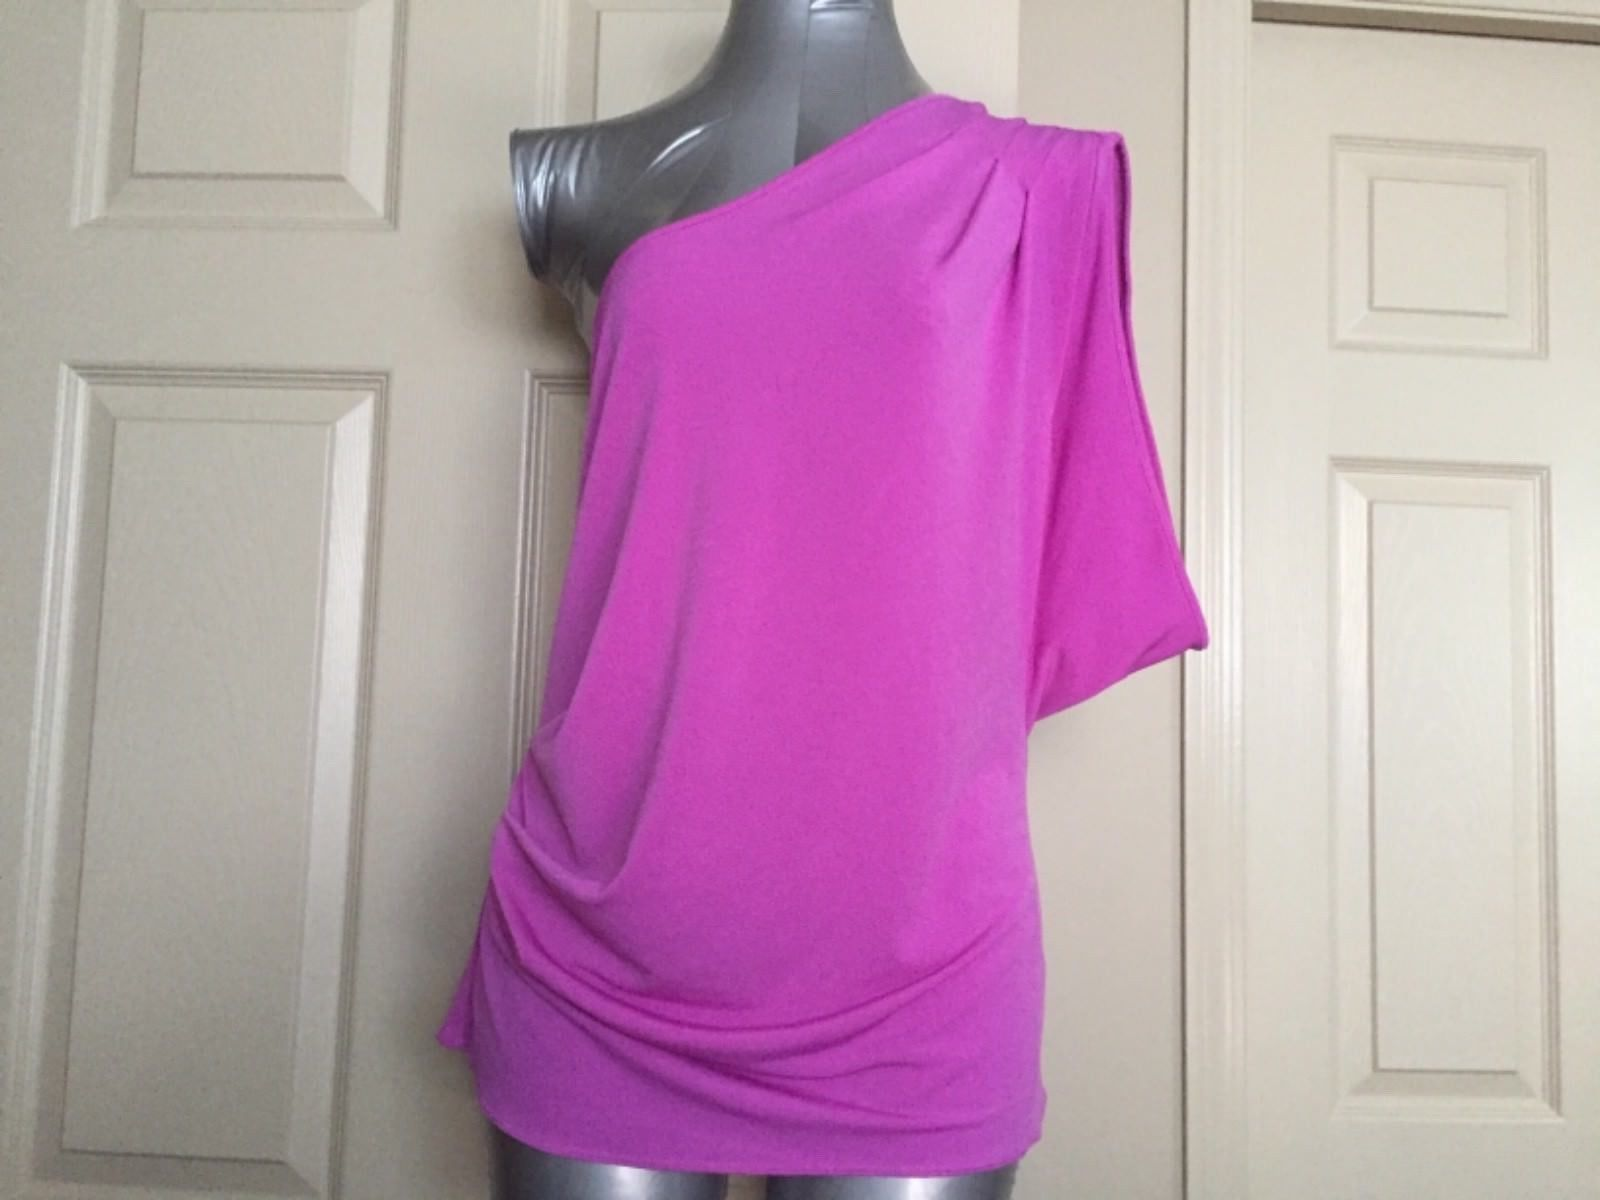 Express Women Top Blouse Size Large Pink One Shoulder One Sleeve Trendy New